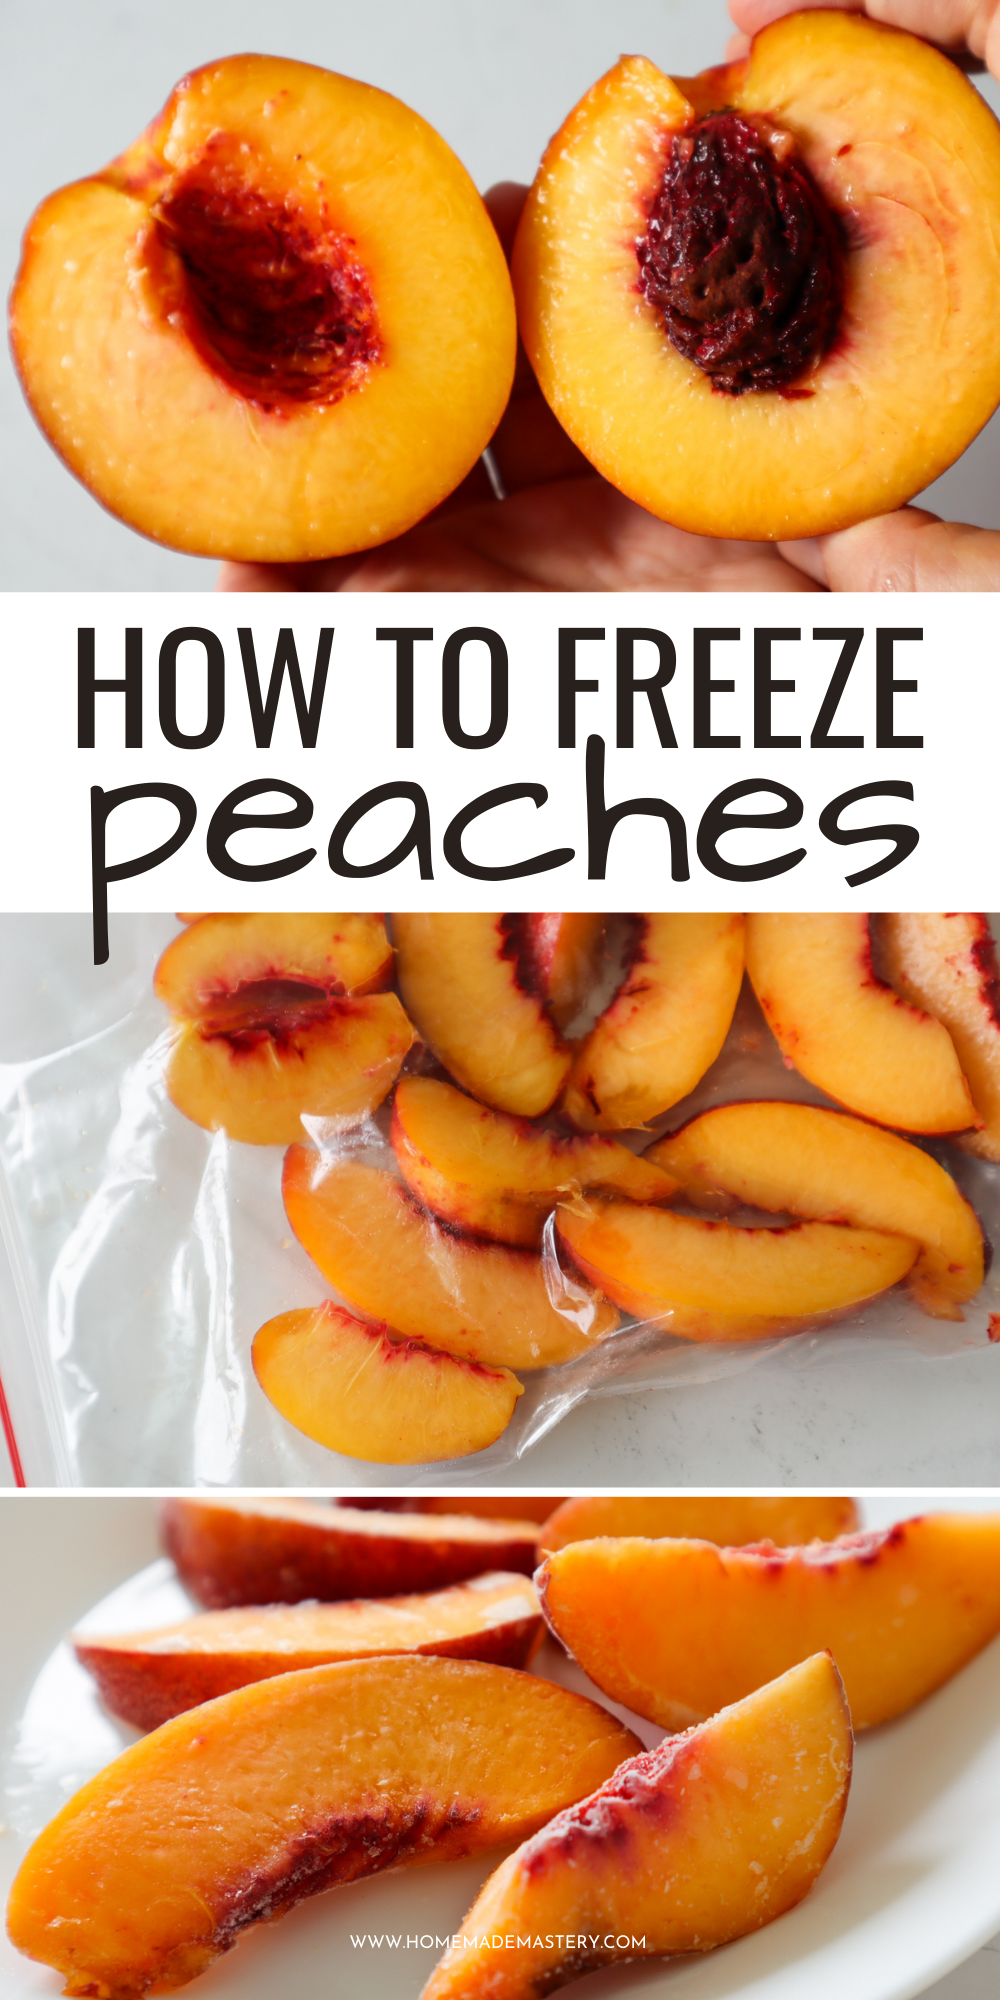 how to freeze peaches and preserve peaches for months + how to use frozen peaches in recipes